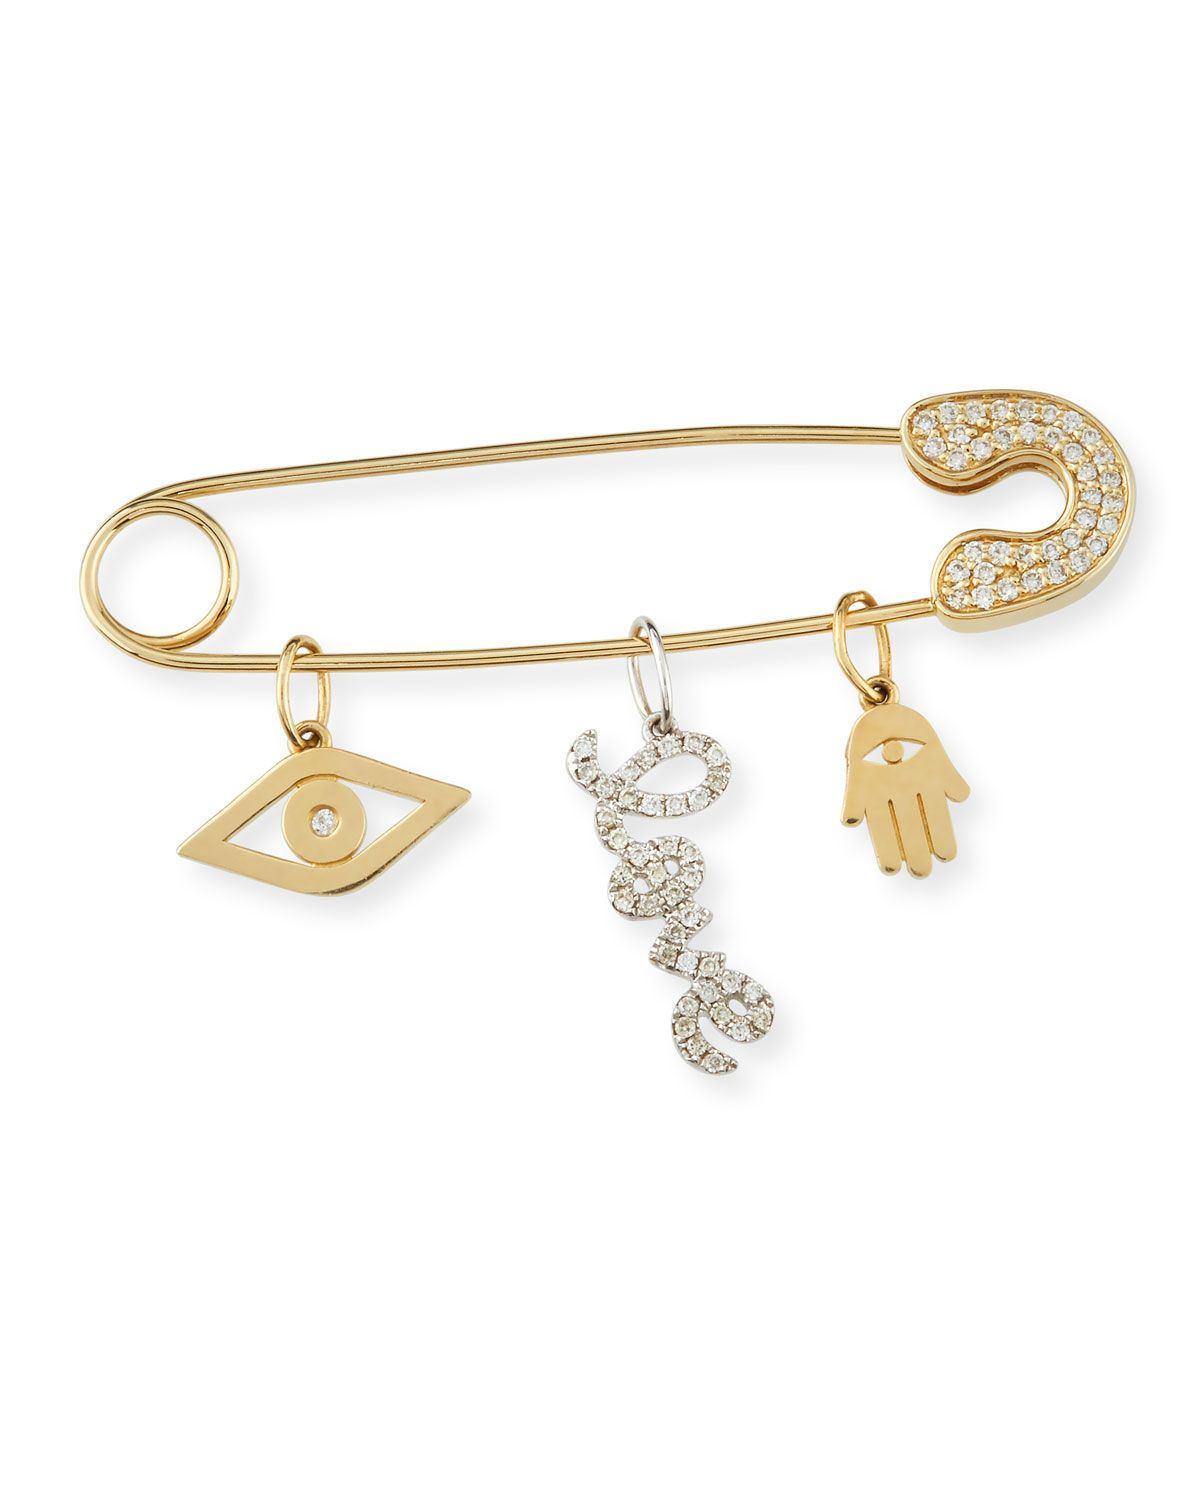 14k Gold Safety Pin Charm Catcher